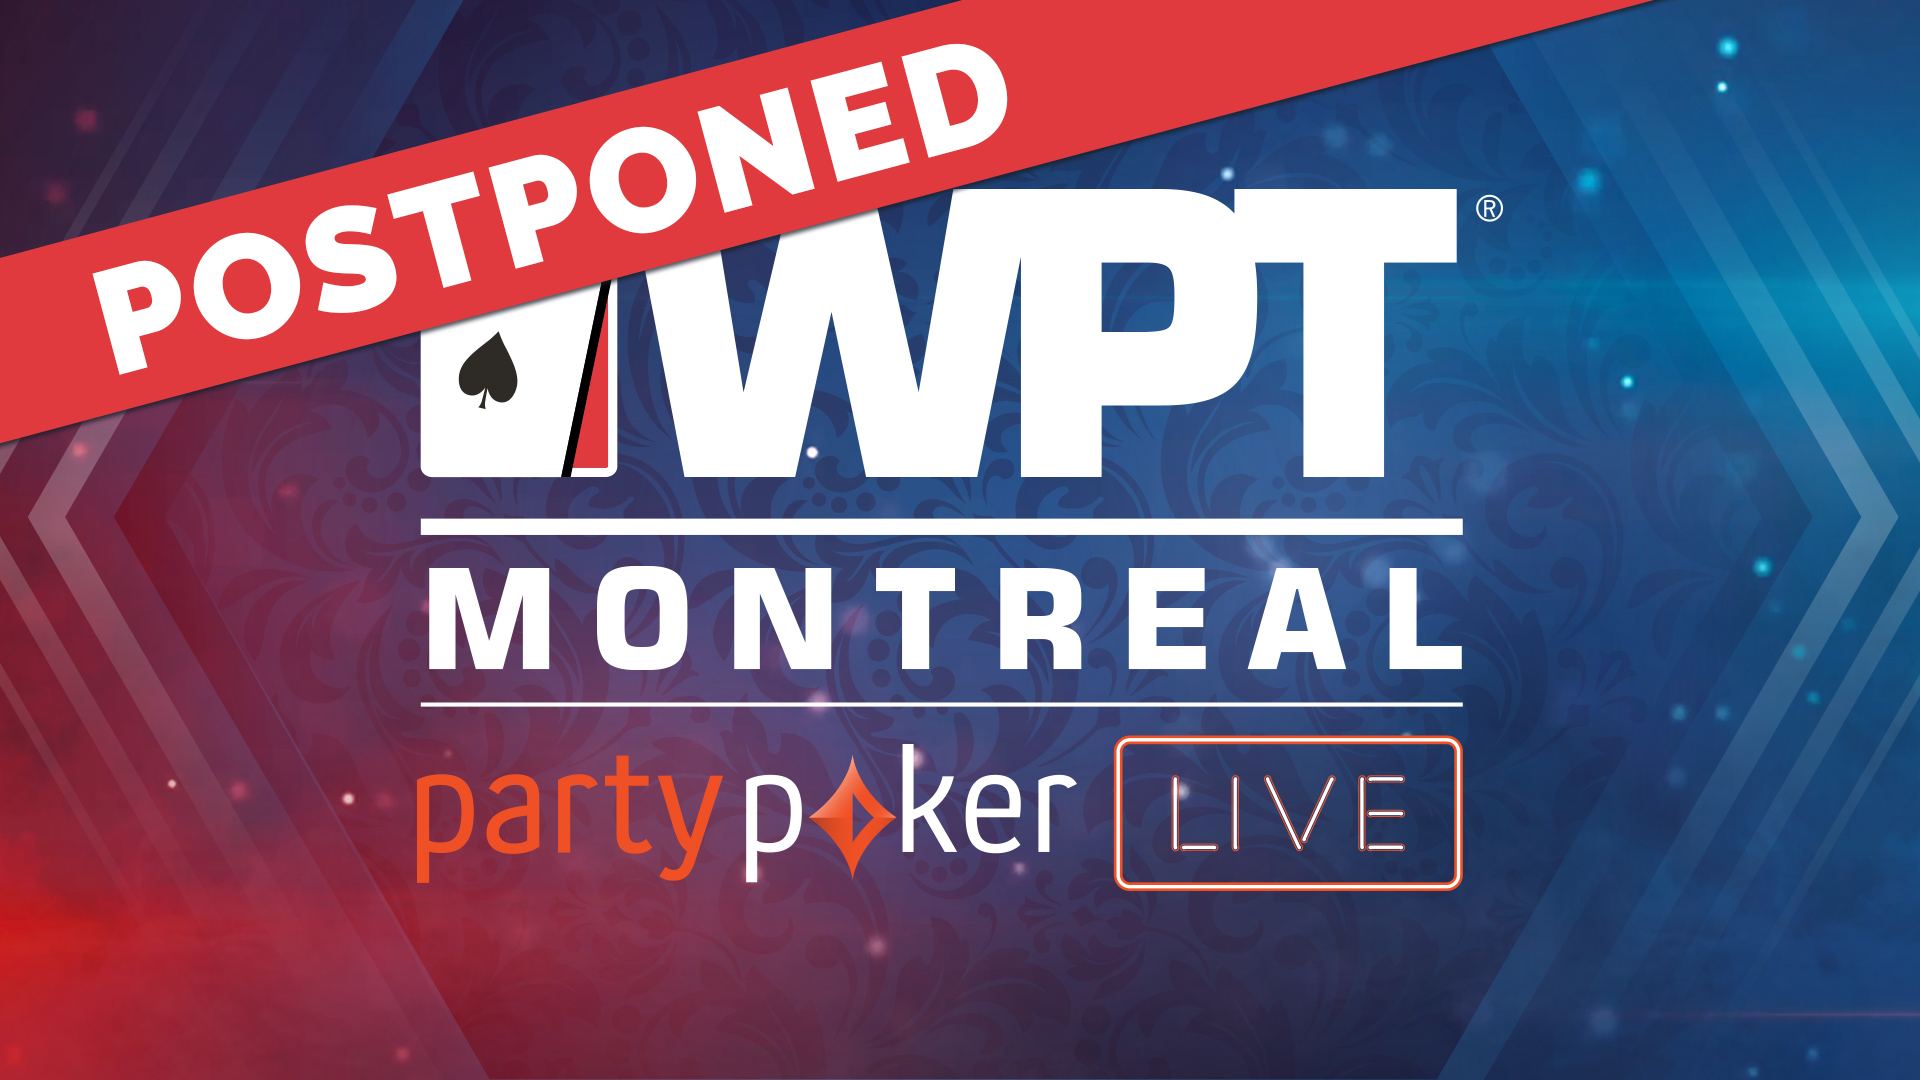 The WPT Montreal is postponed